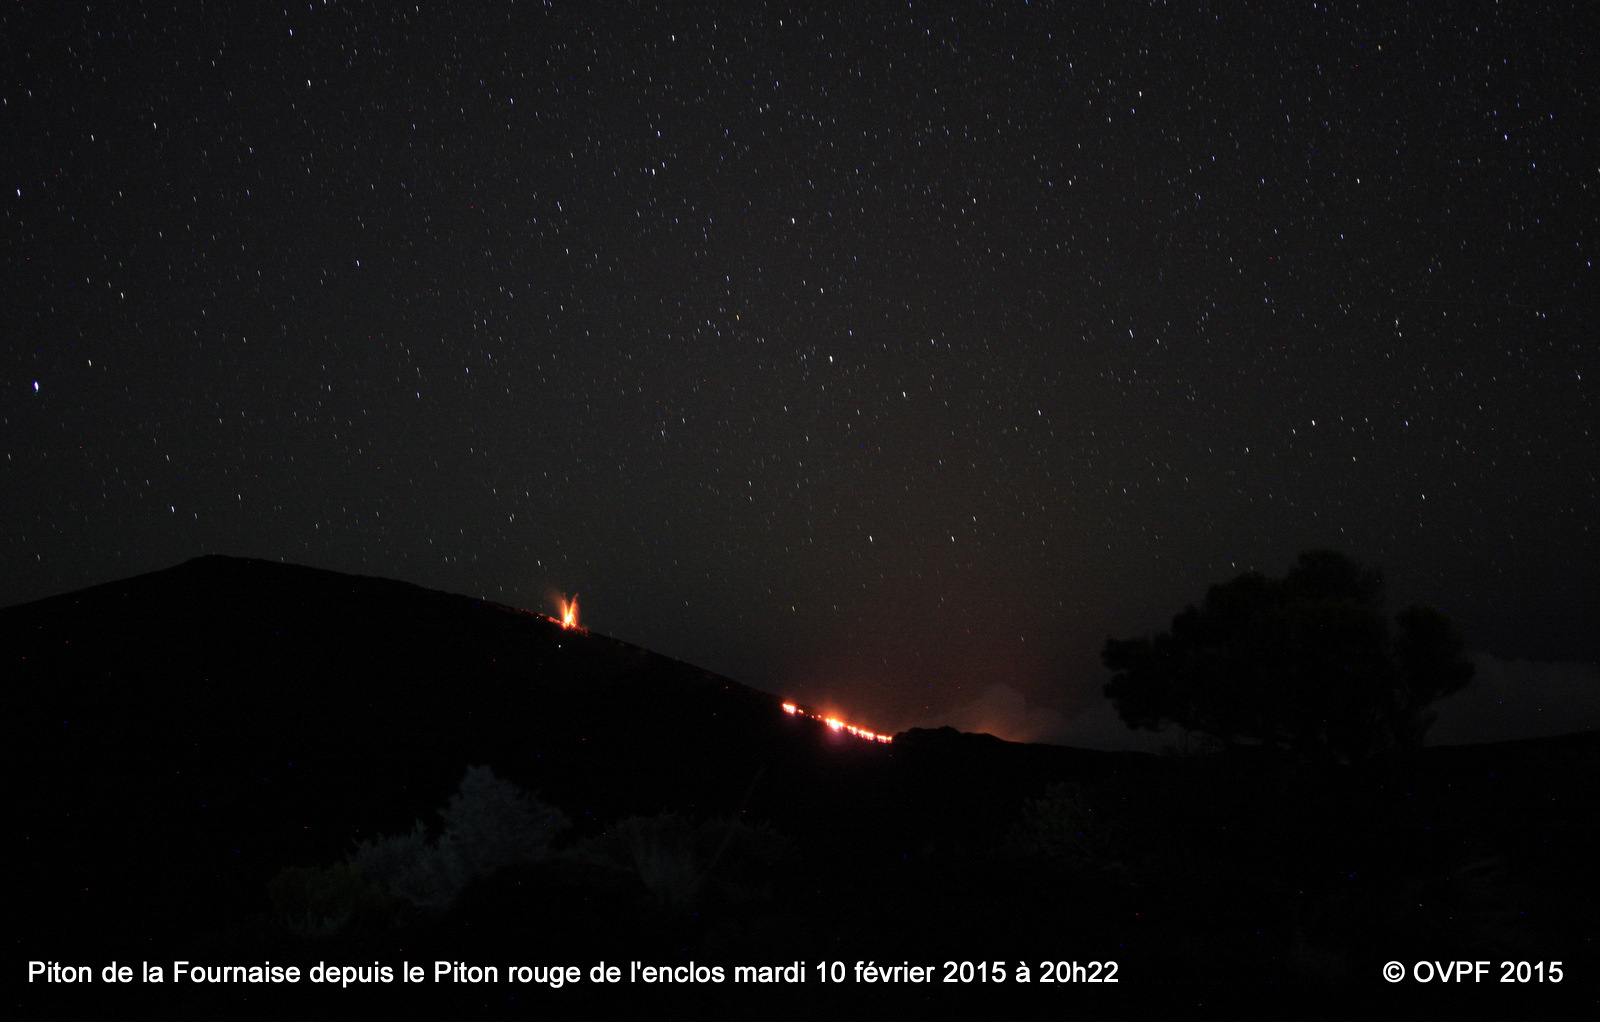 Piton de la Fournaise - the eruption and the glow of the lava flow, views on 02.10.2015 / 8:22 p.m. from the red Piton - photo OVPF